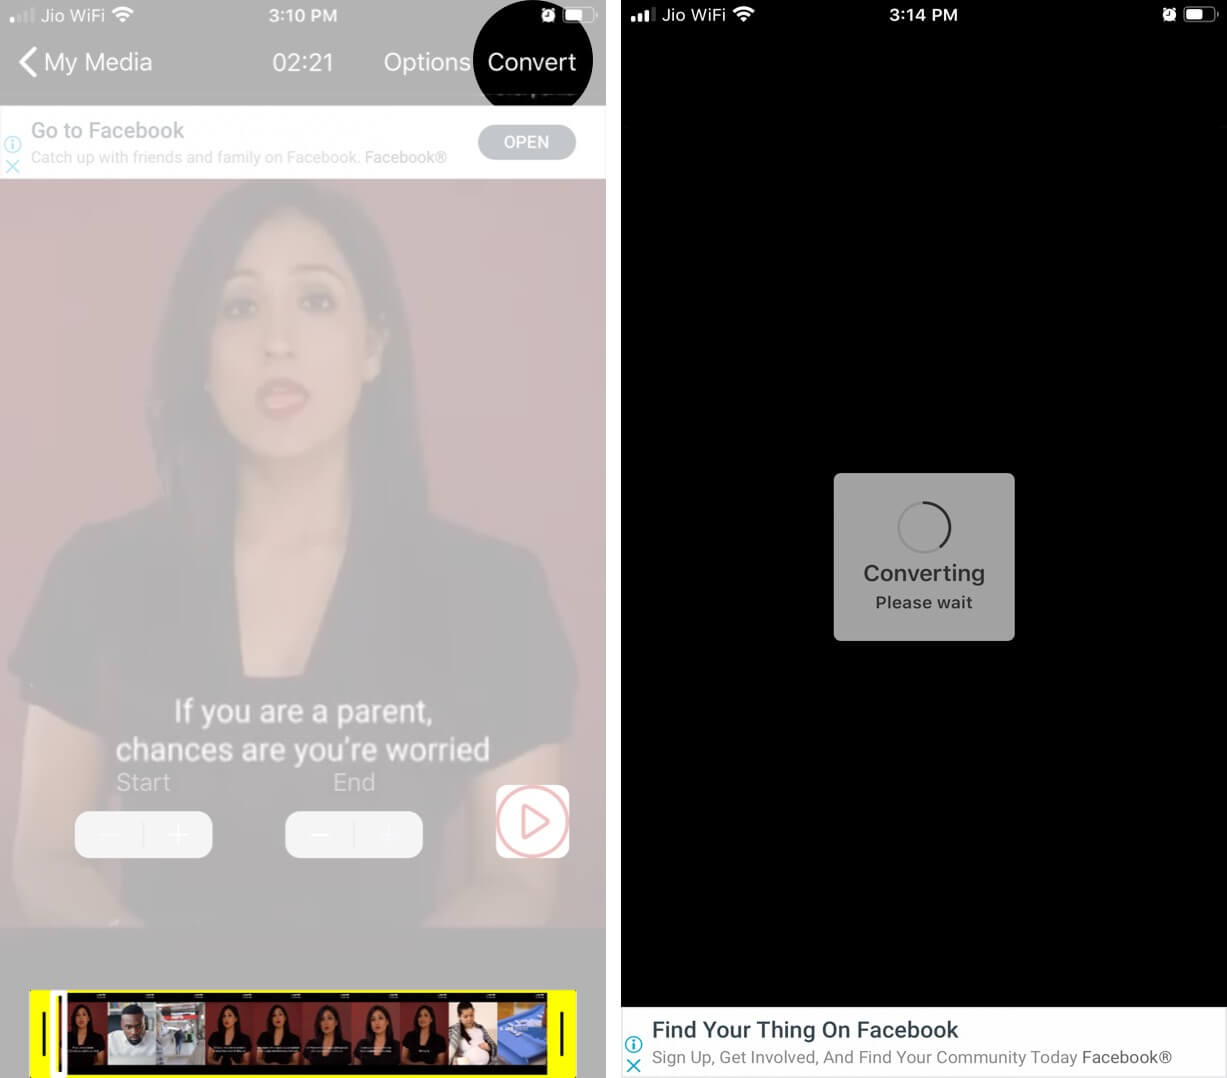 Create Cover Photo and Then Tap on Convert on iPhone